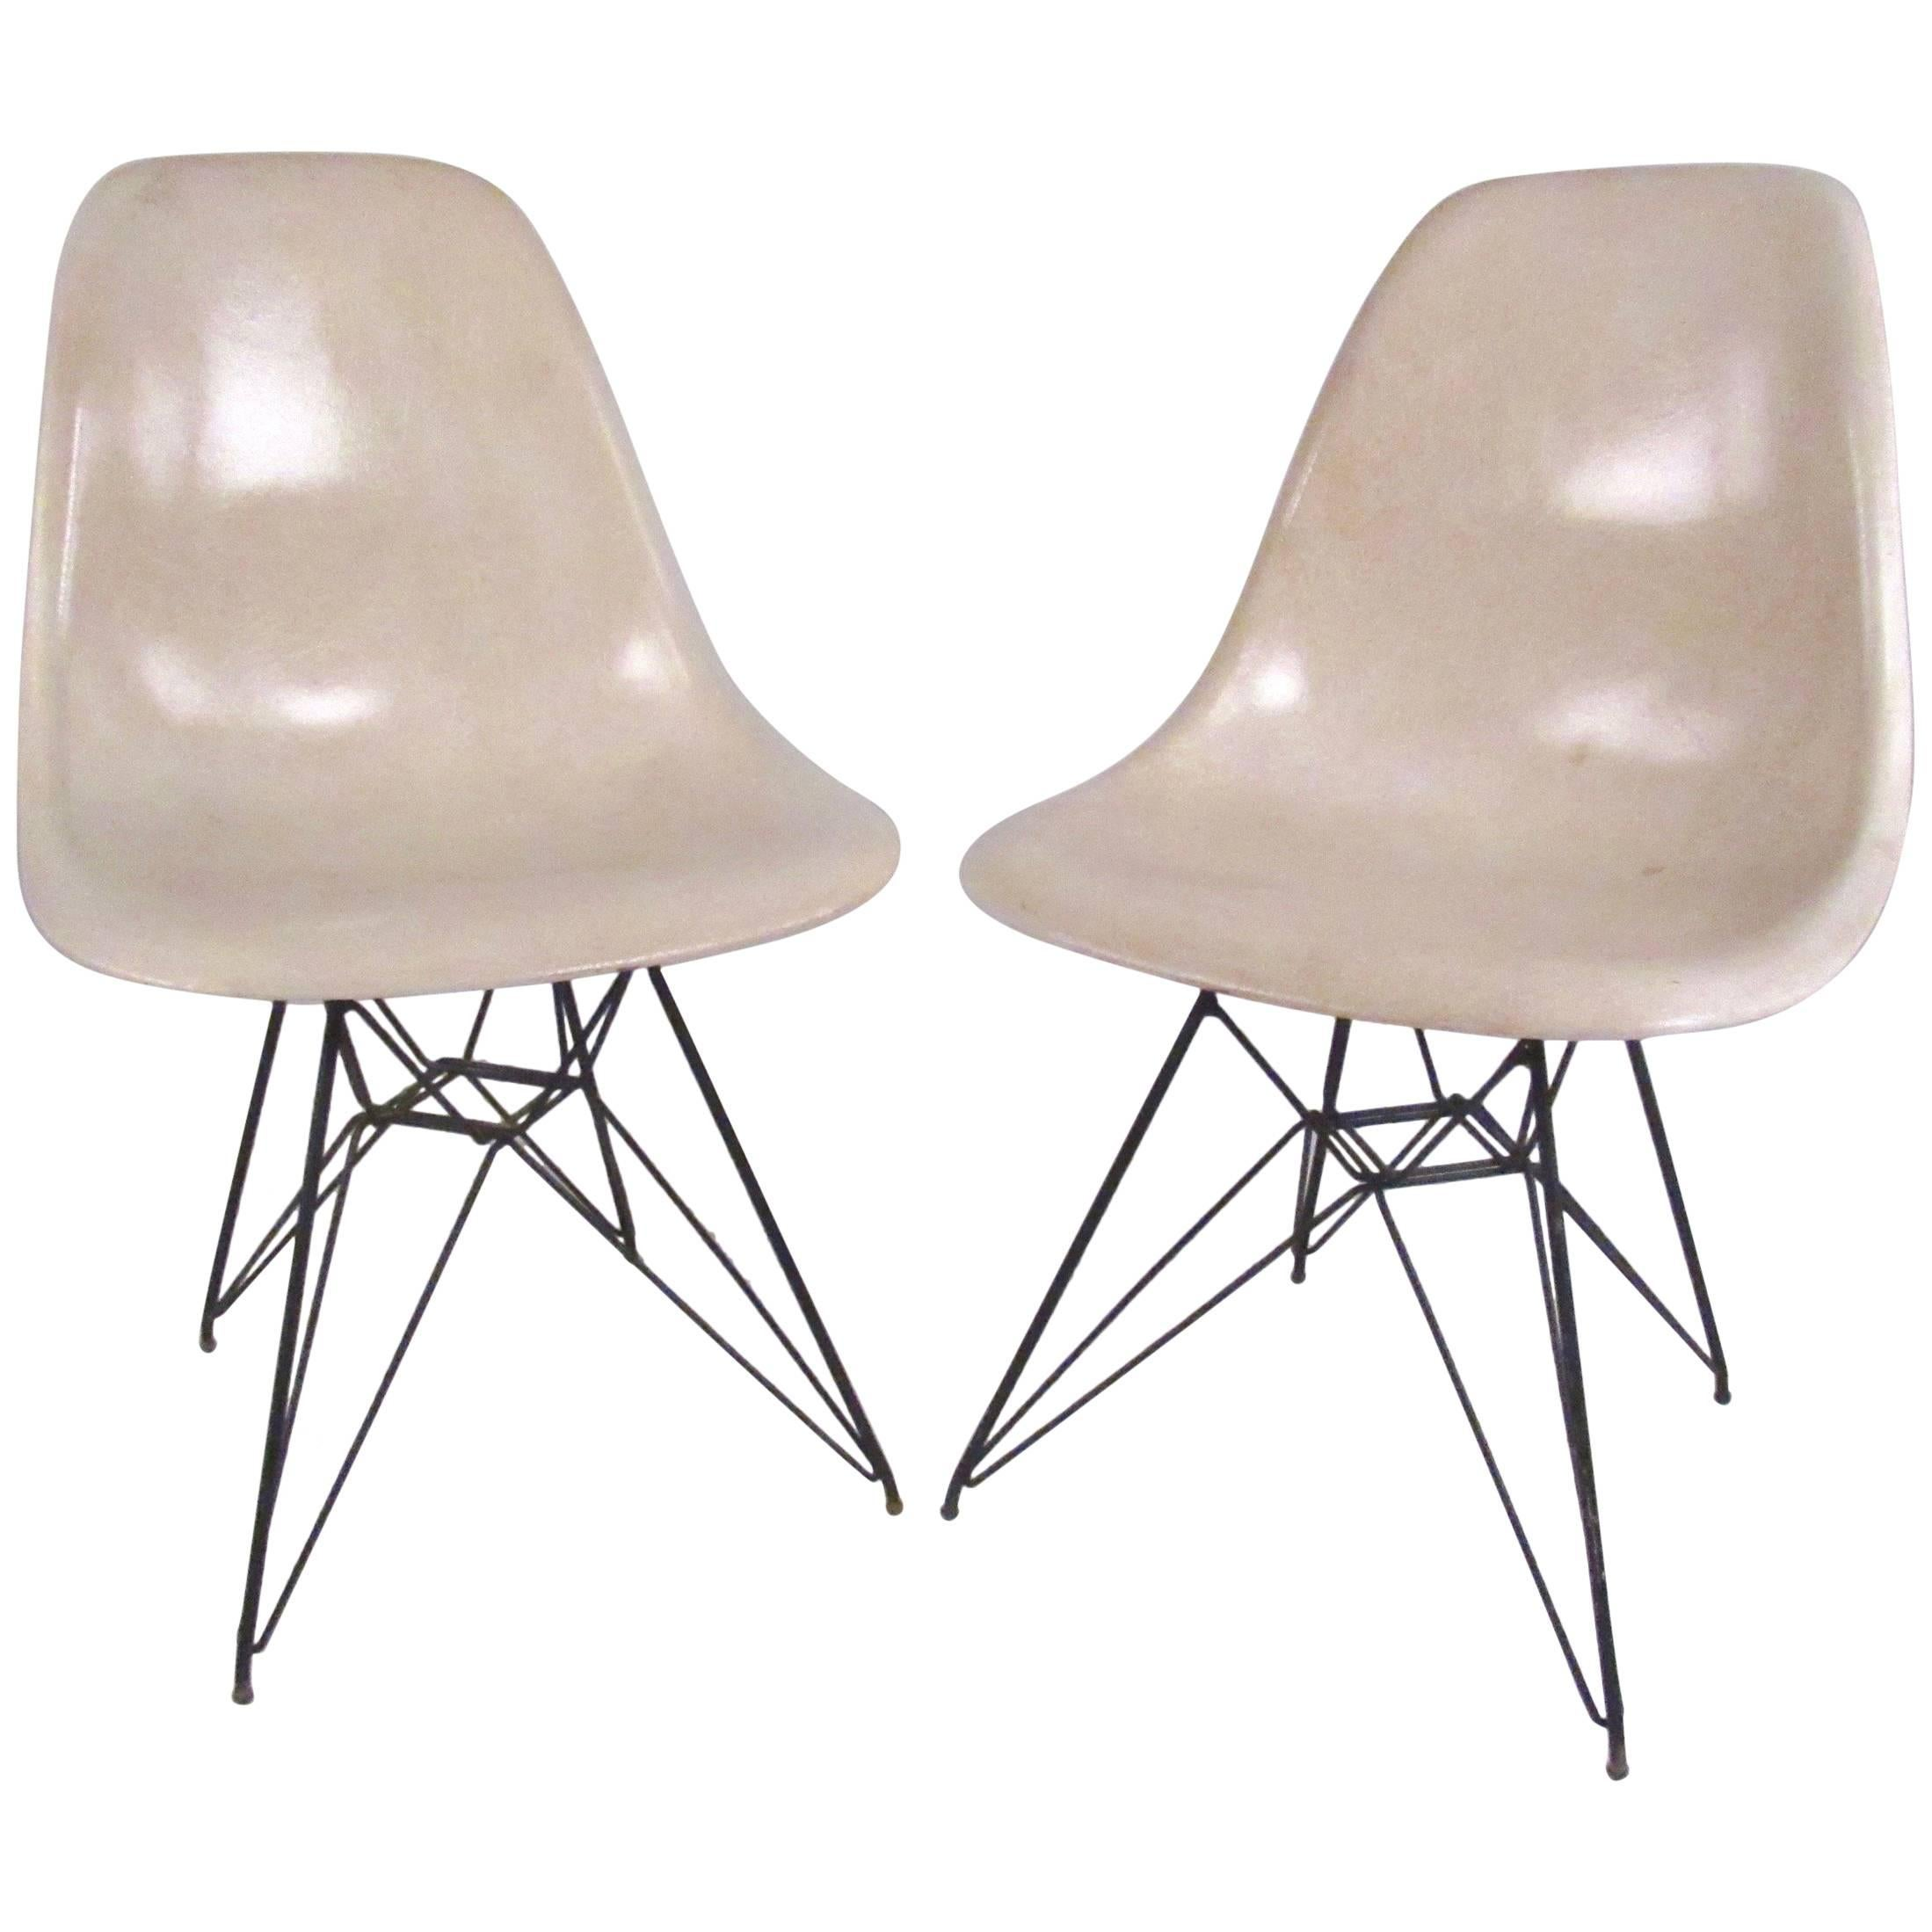 Eames Eiffel Charles Eames Eiffel Tower Fiberglass Side Chairs For Herman Miller